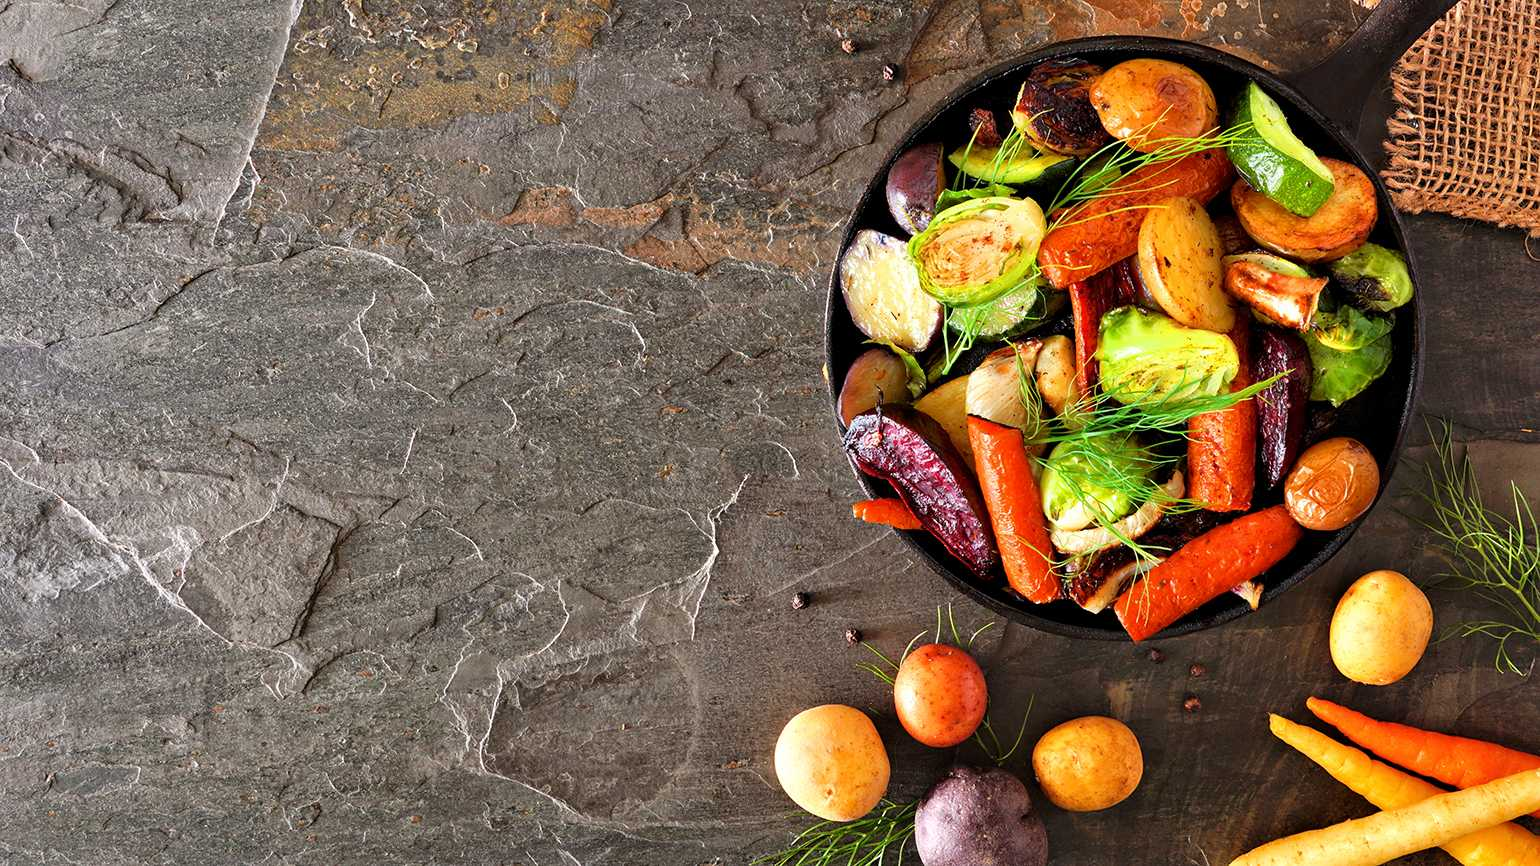 Variety of vegetables in a pan